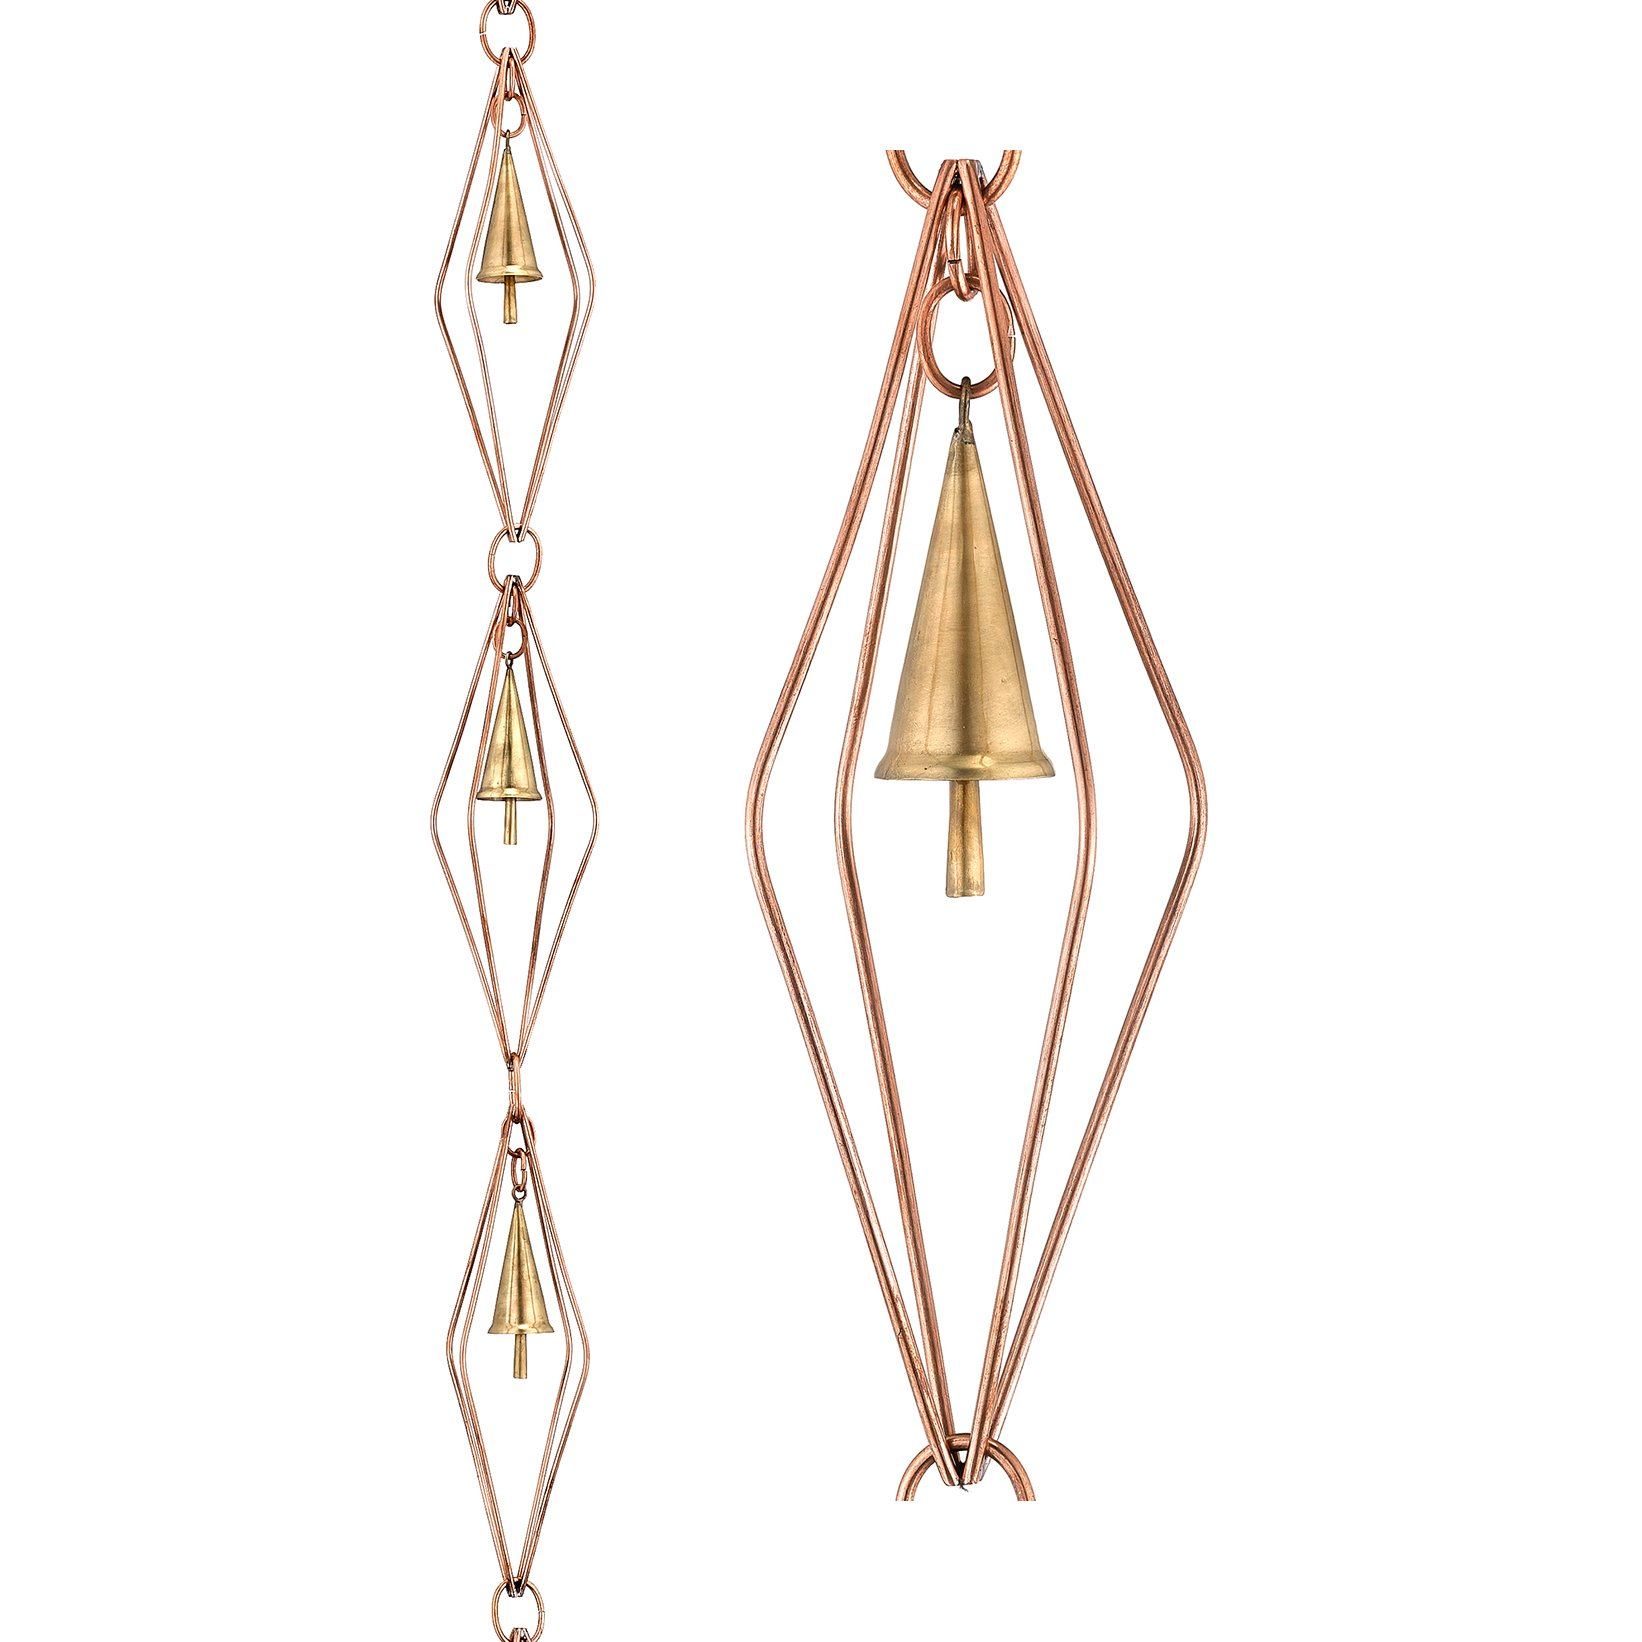 Good Directions 469P-8 Diamond Pure Copper 8.5' Rain Chain with Bells by Good Directions